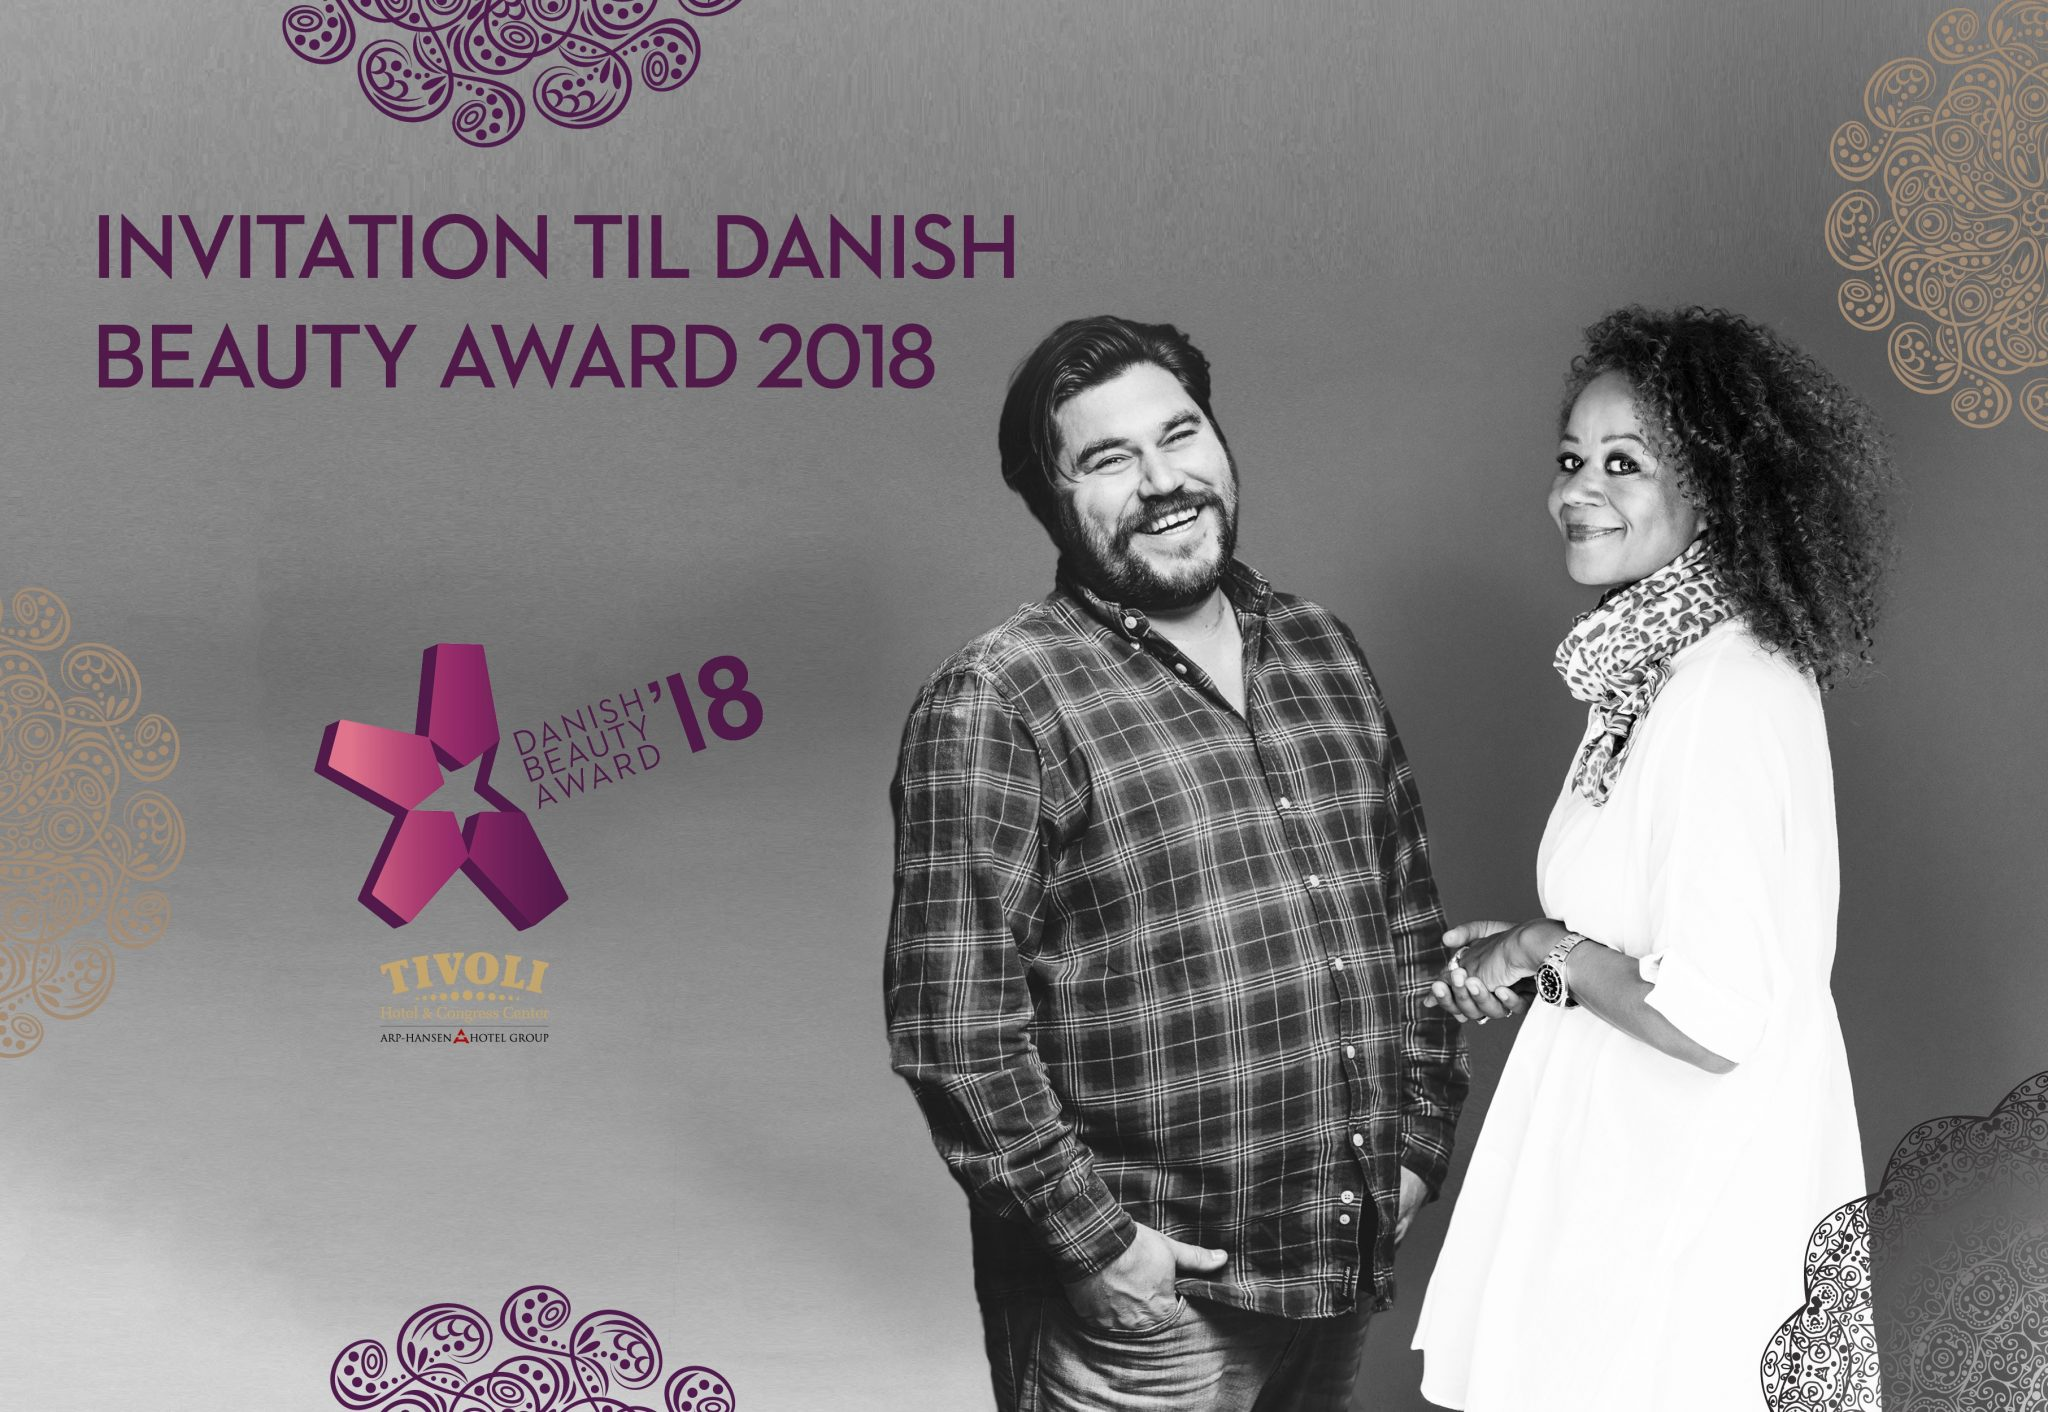 Invitation til Danish Beauty Award 2018